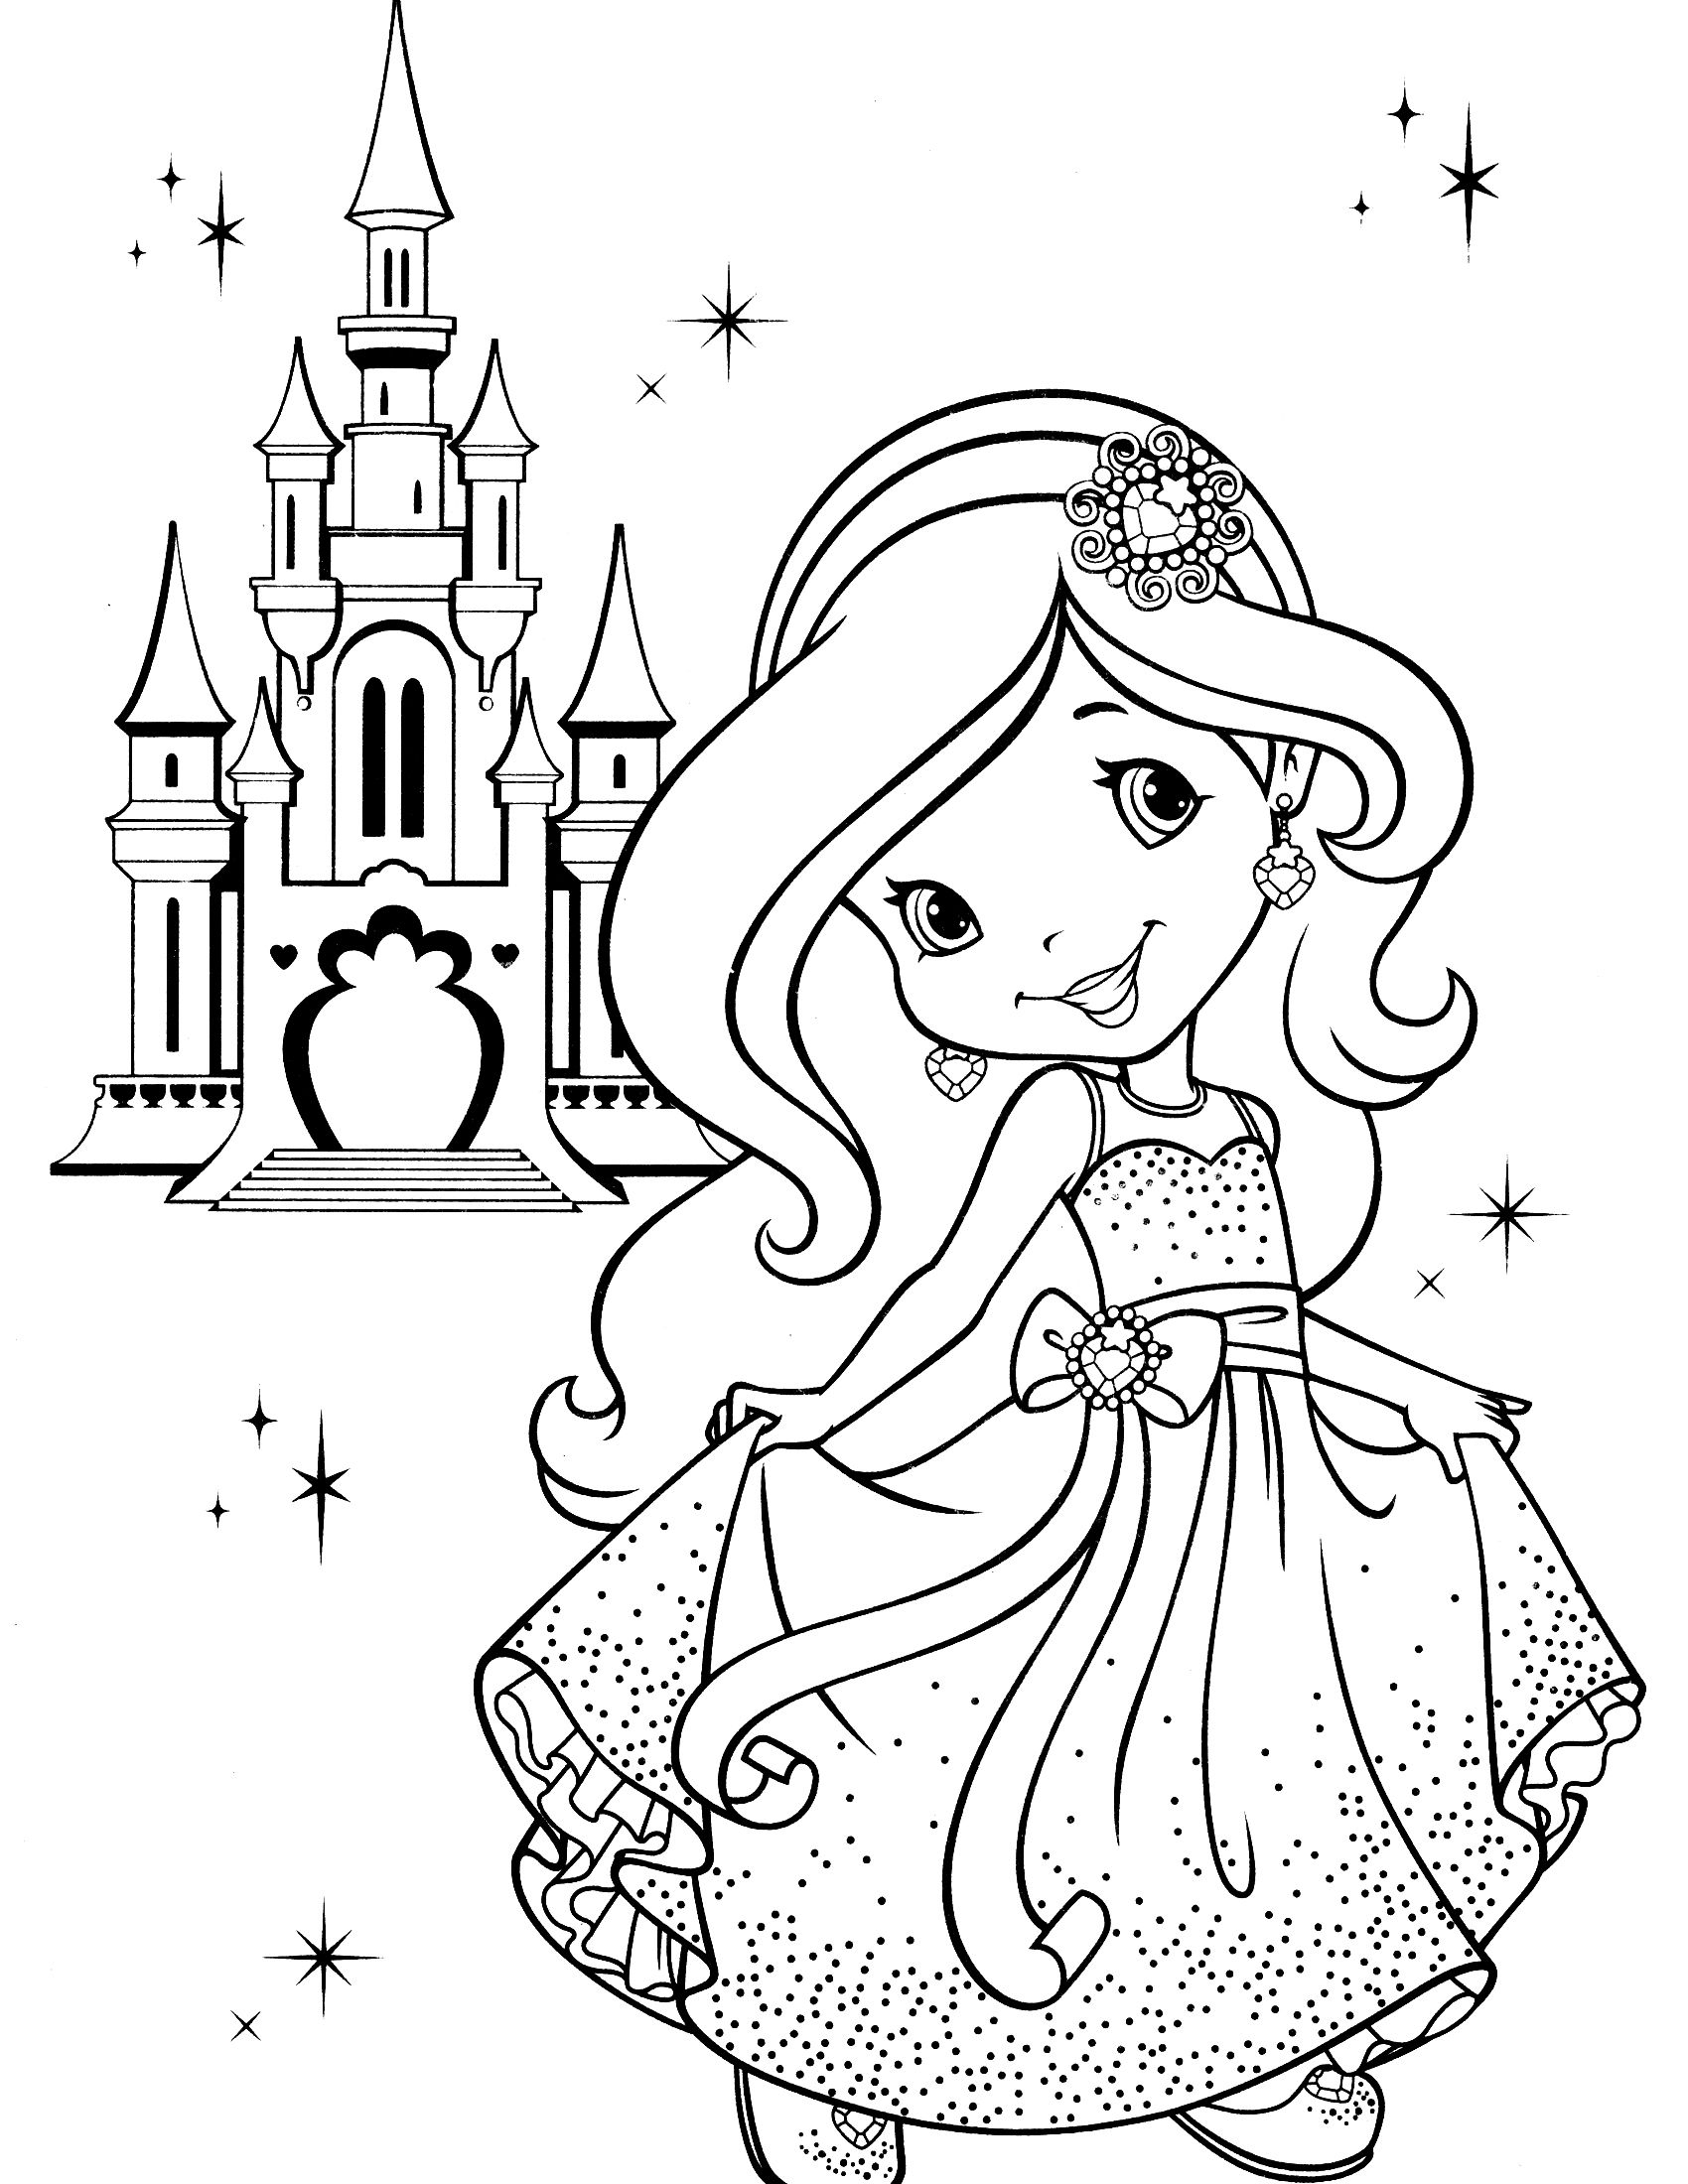 Strawberry Shortcake Coloring Page | Kids Kleuren - Strawberry Shortcake Coloring Pages Free Printable